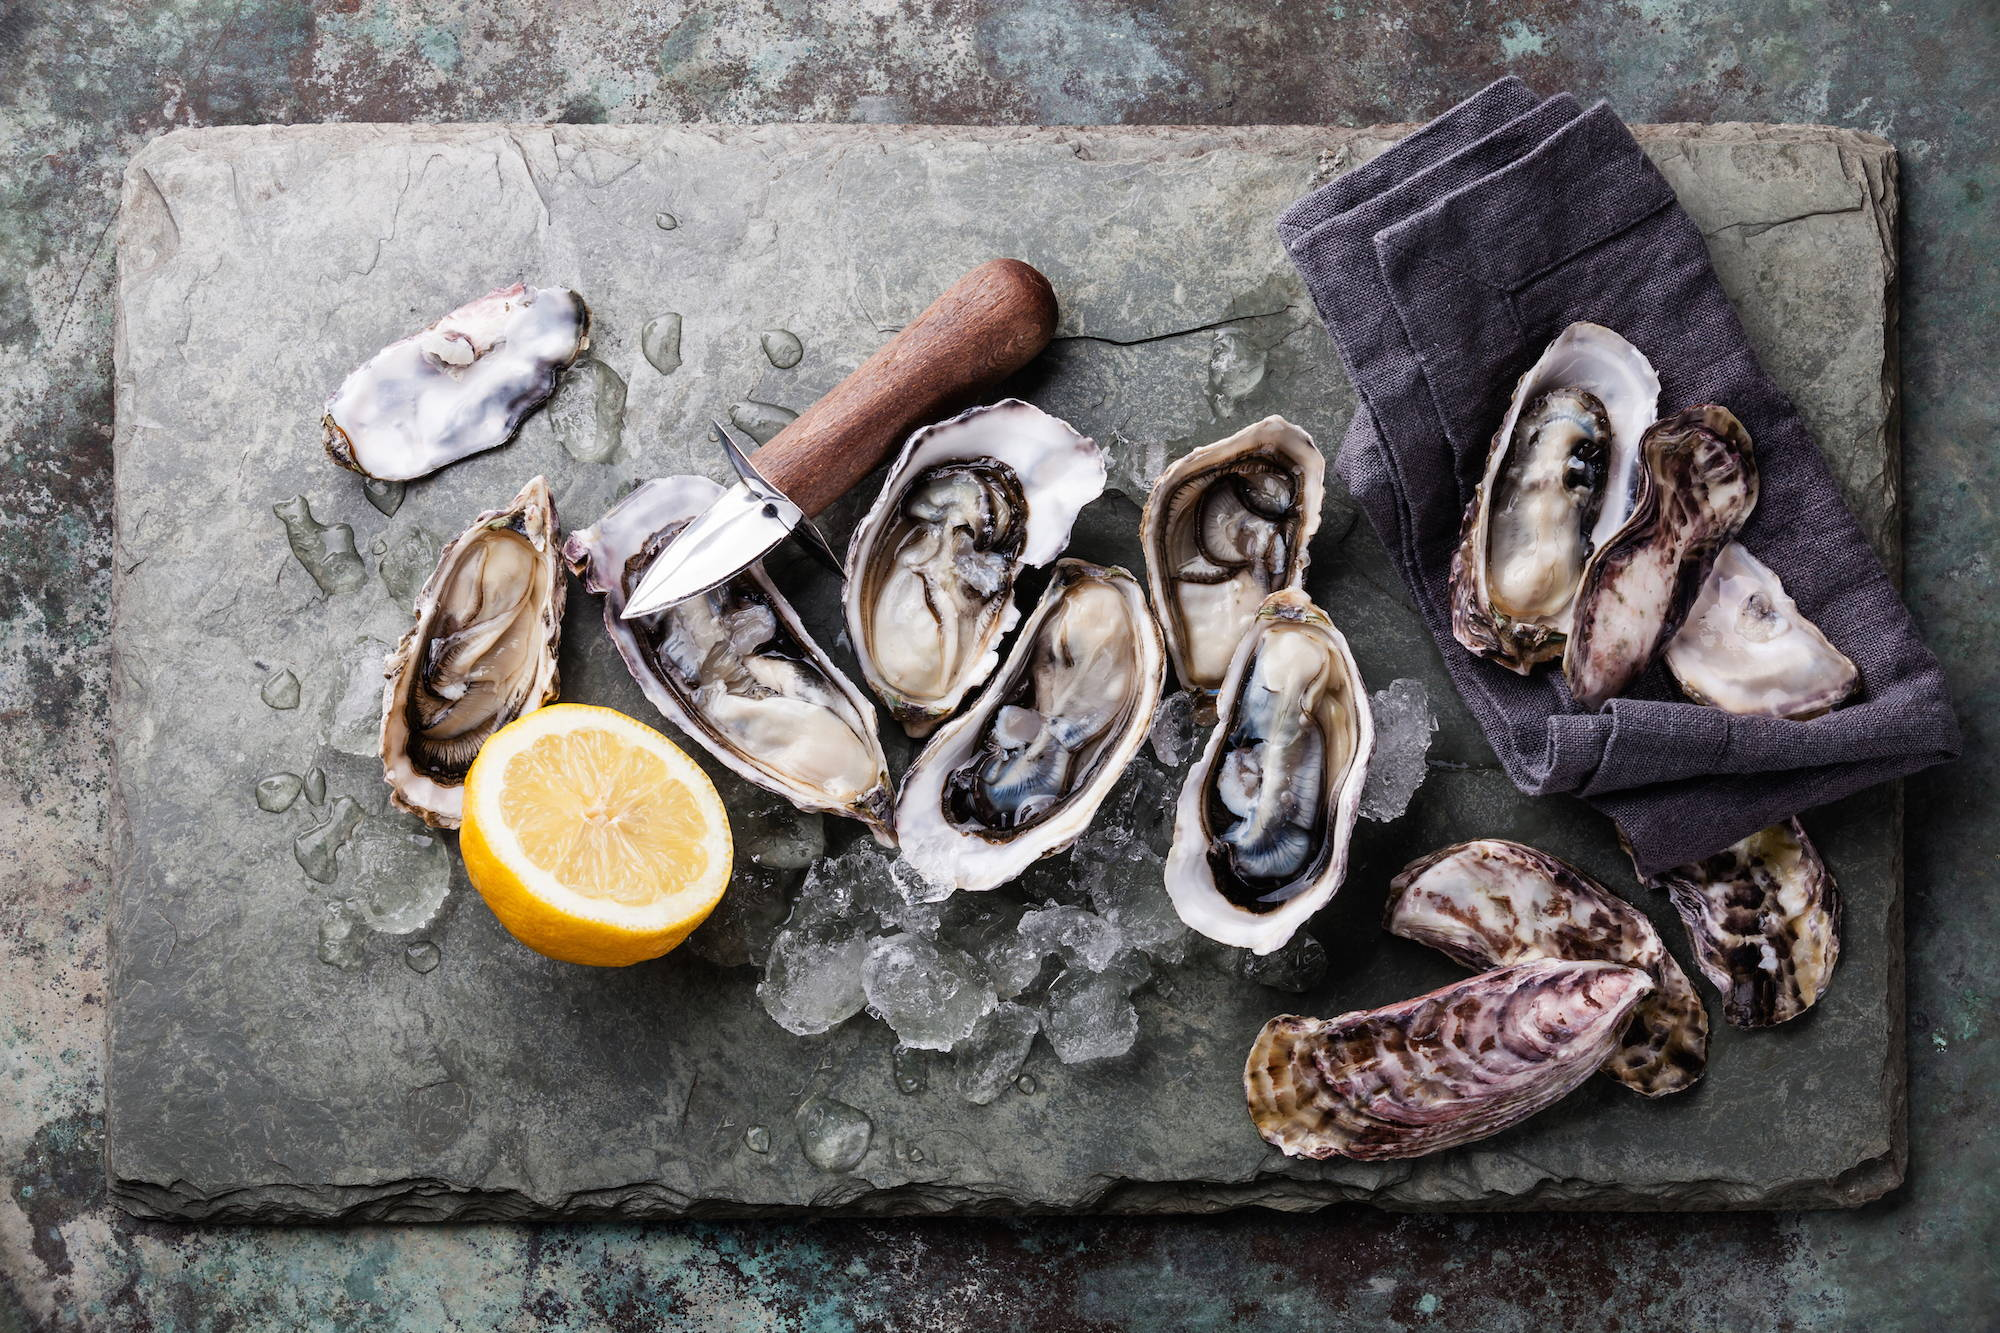 Oysters are a source of zinc, important for sperm and egg cells